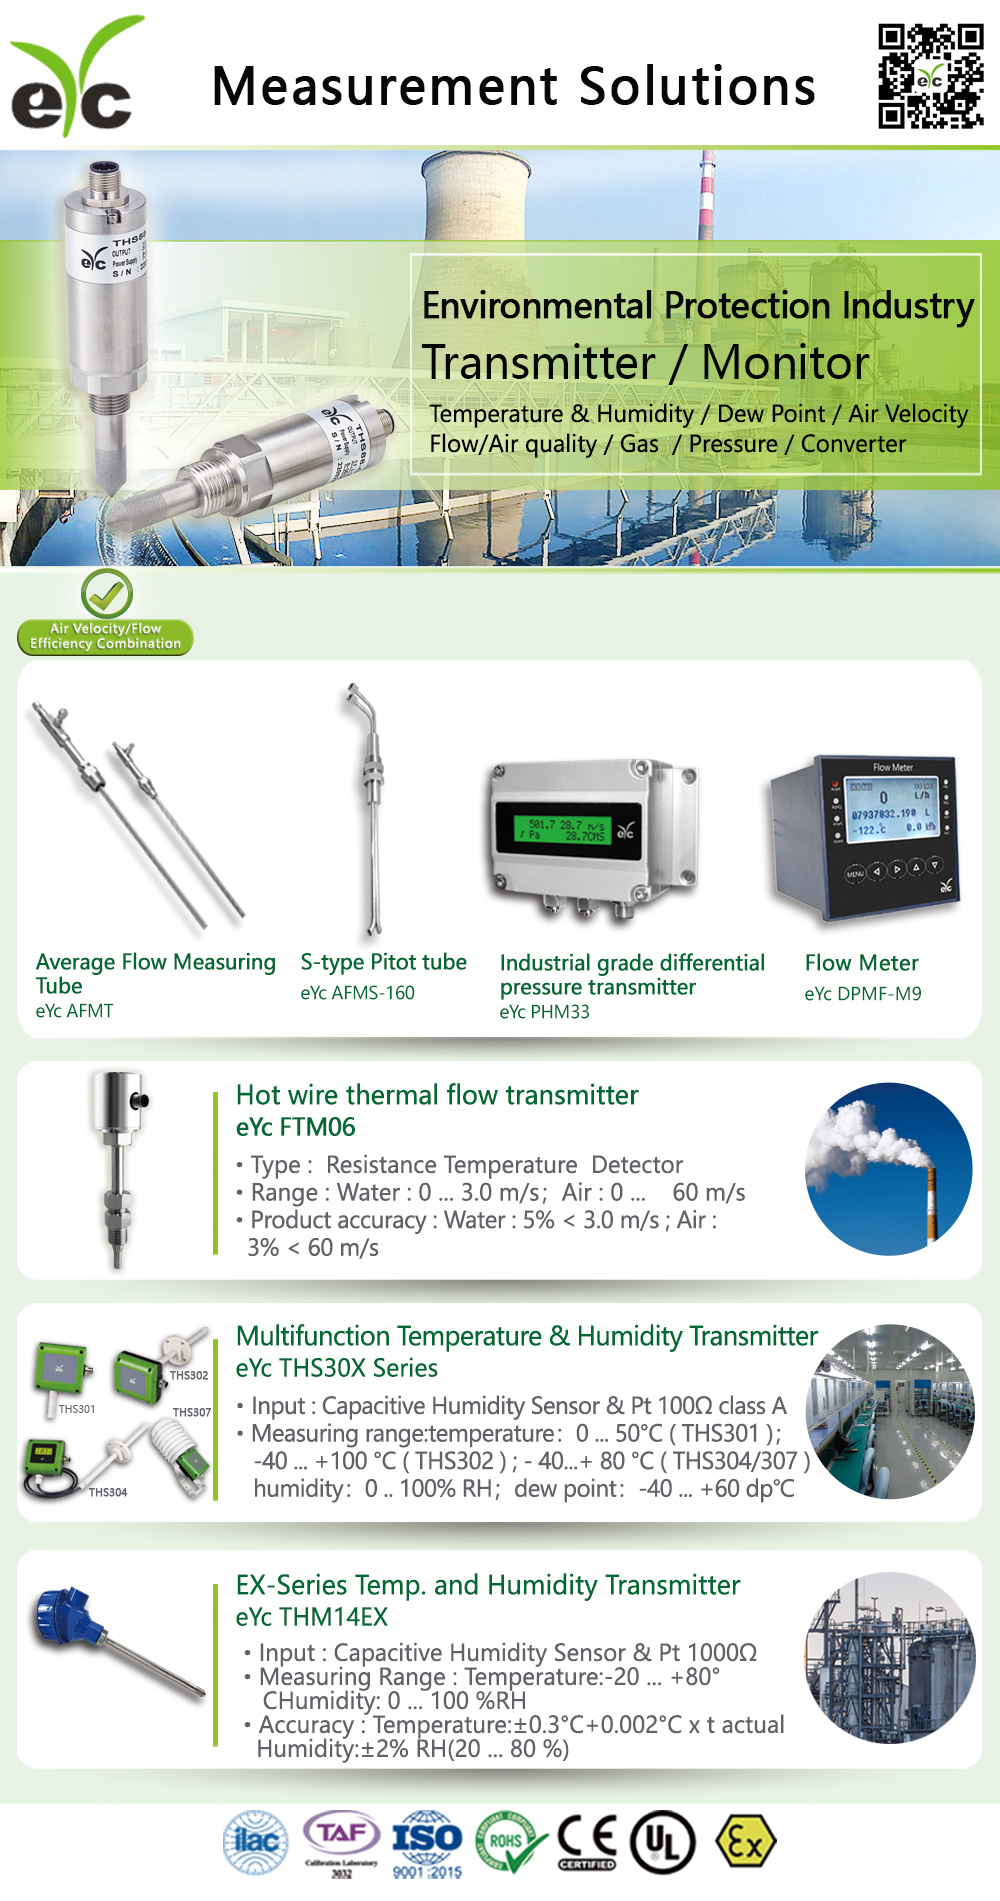 eYc Measurement solution for environmental protection industry